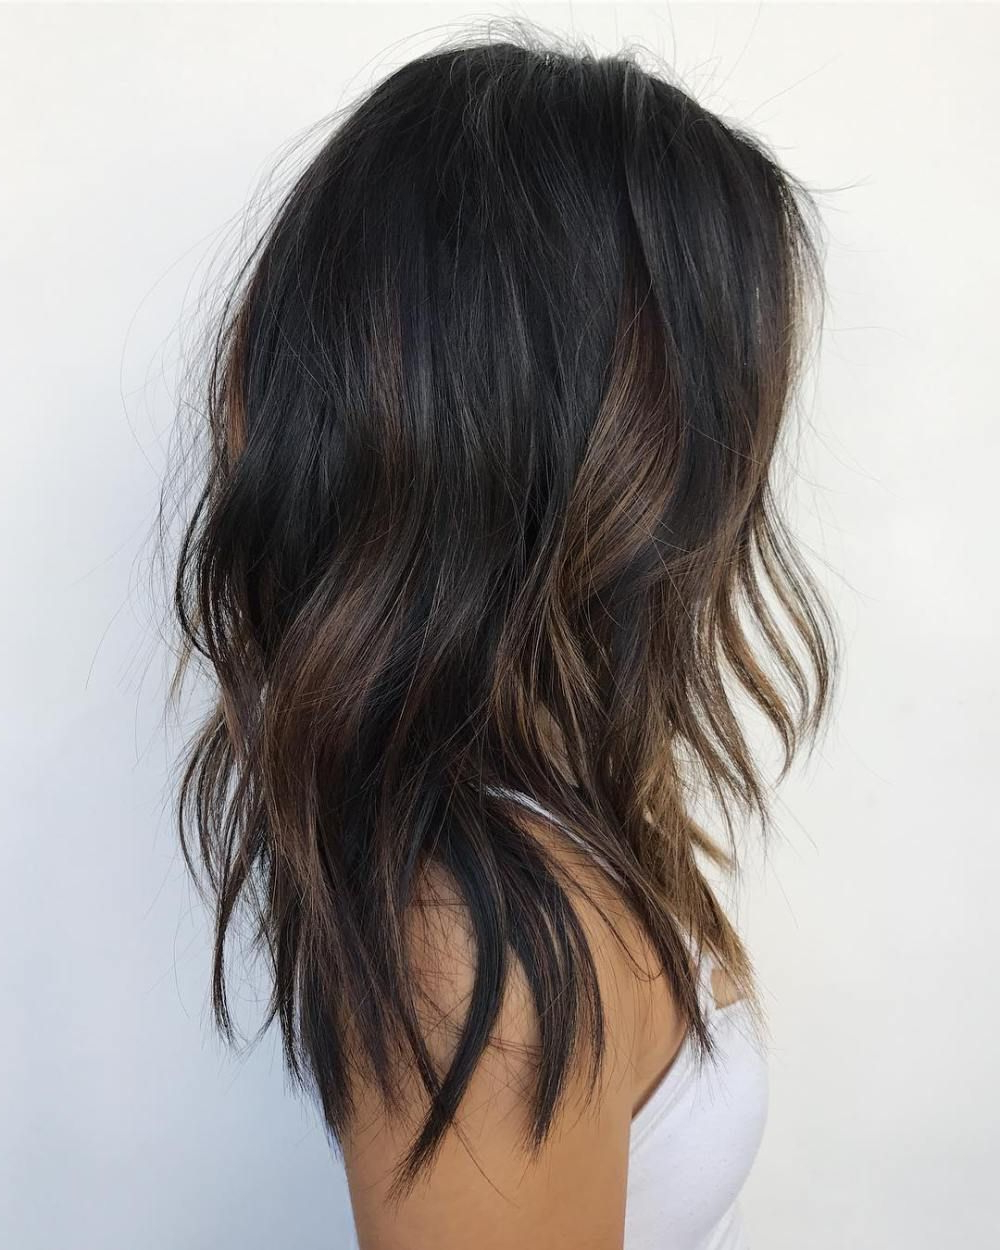 20 Jaw Dropping Partial Balayage Hairstyles In 2018   Dark Hair Throughout Curly Dark Brown Bob Hairstyles With Partial Balayage (View 4 of 25)